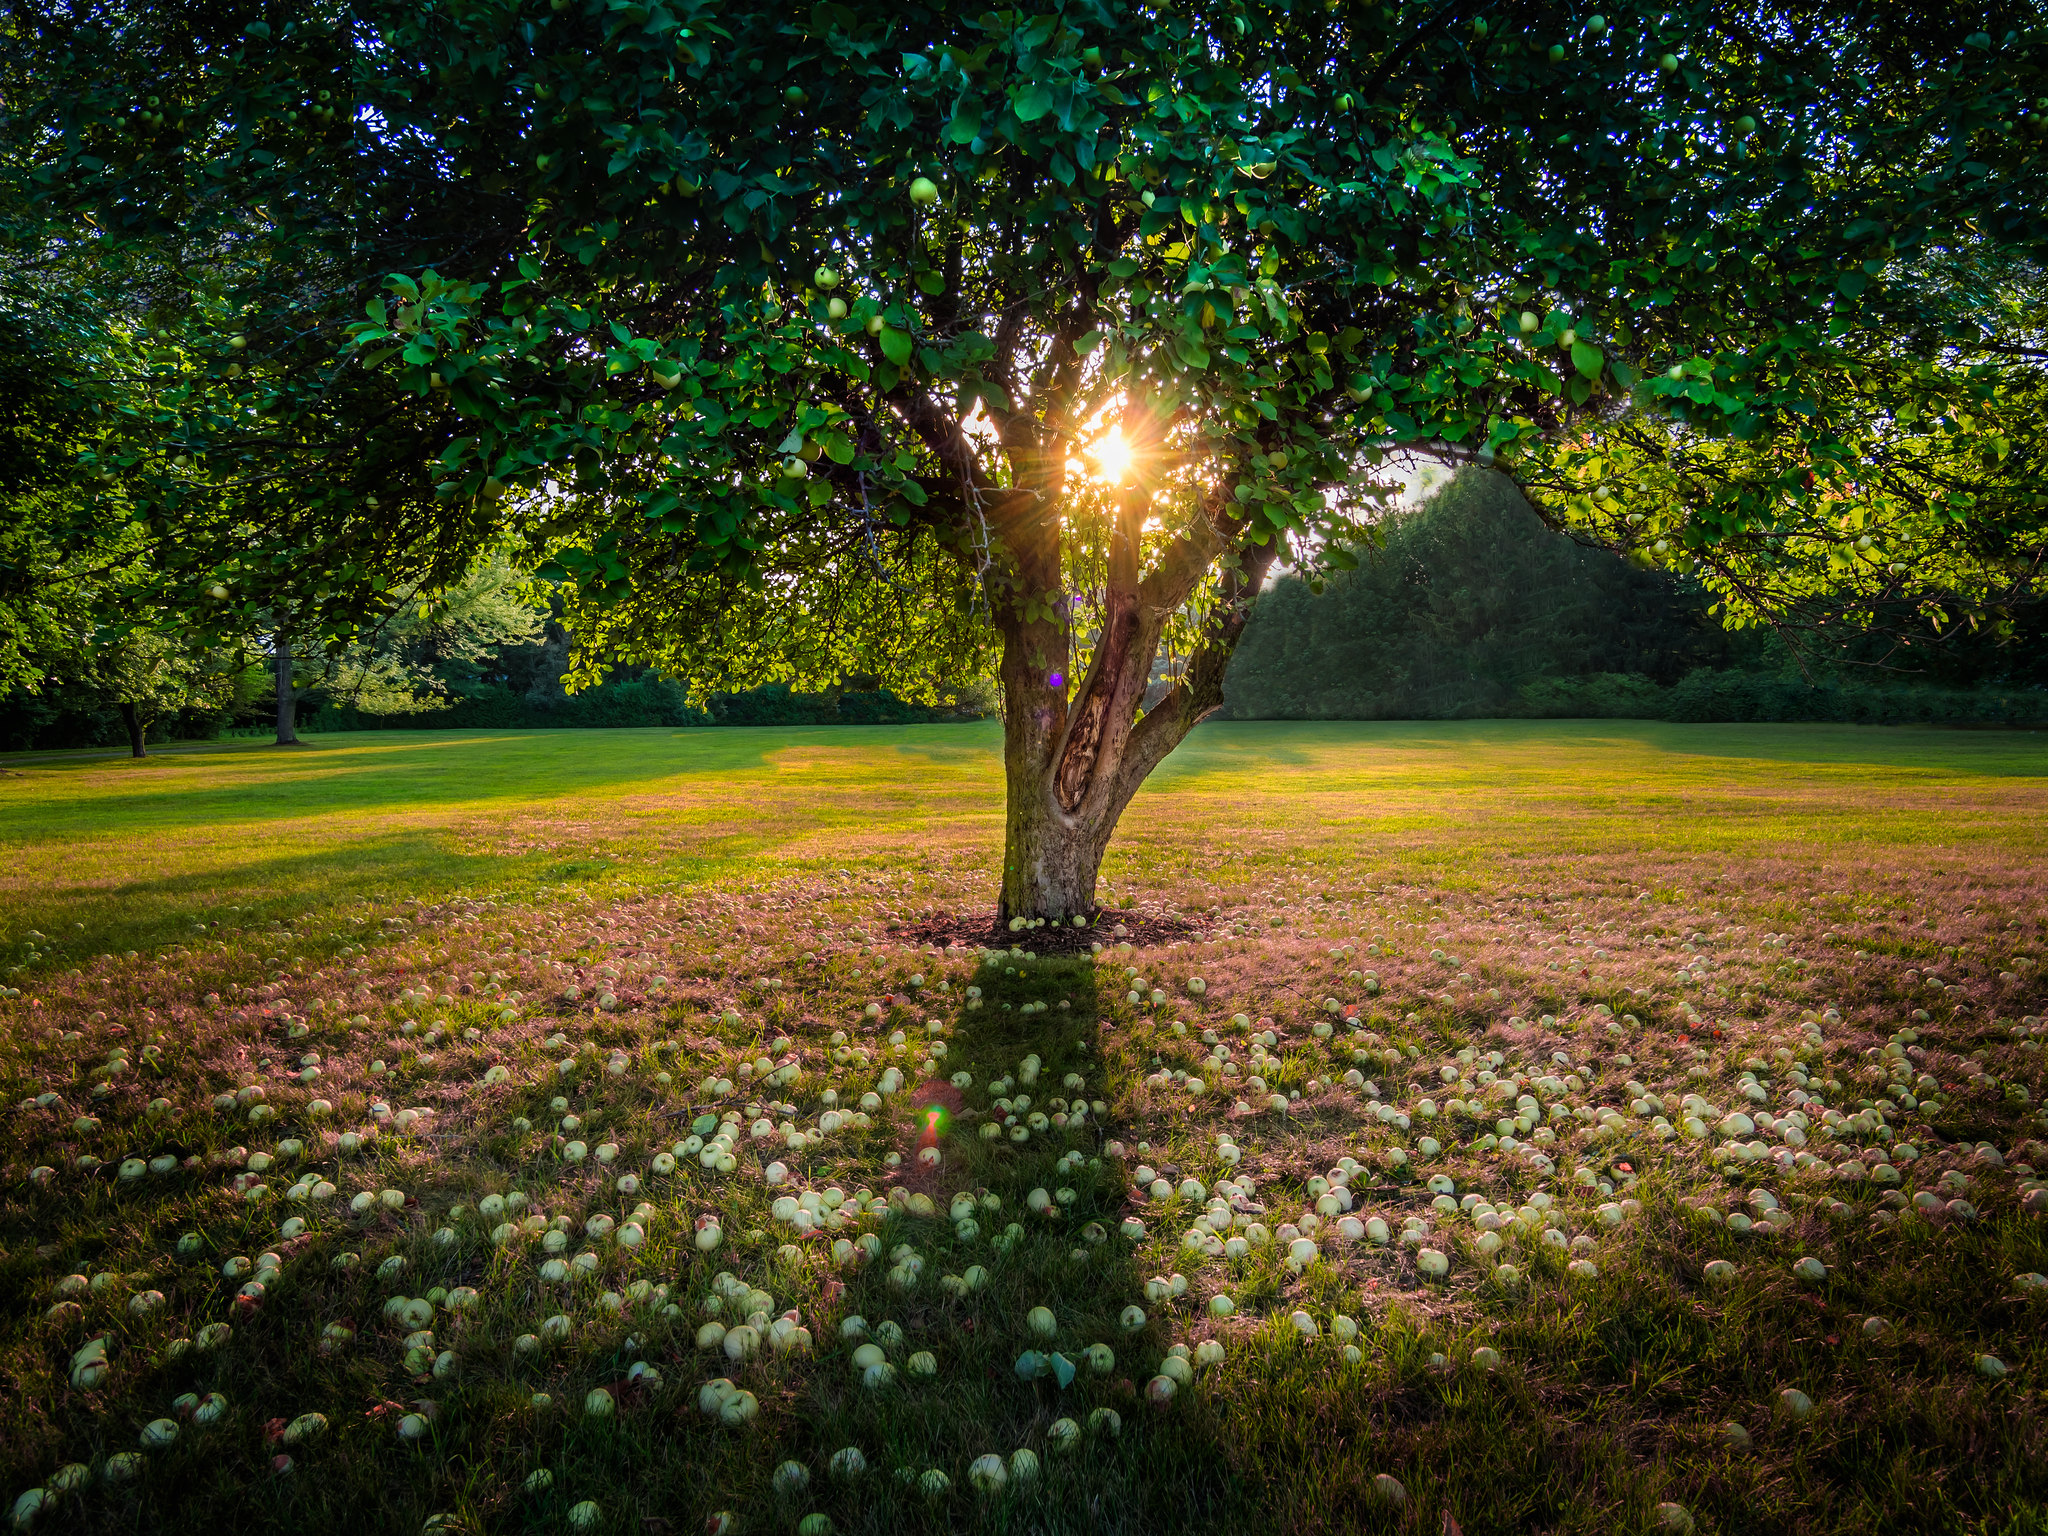 An apple tree at sunset.